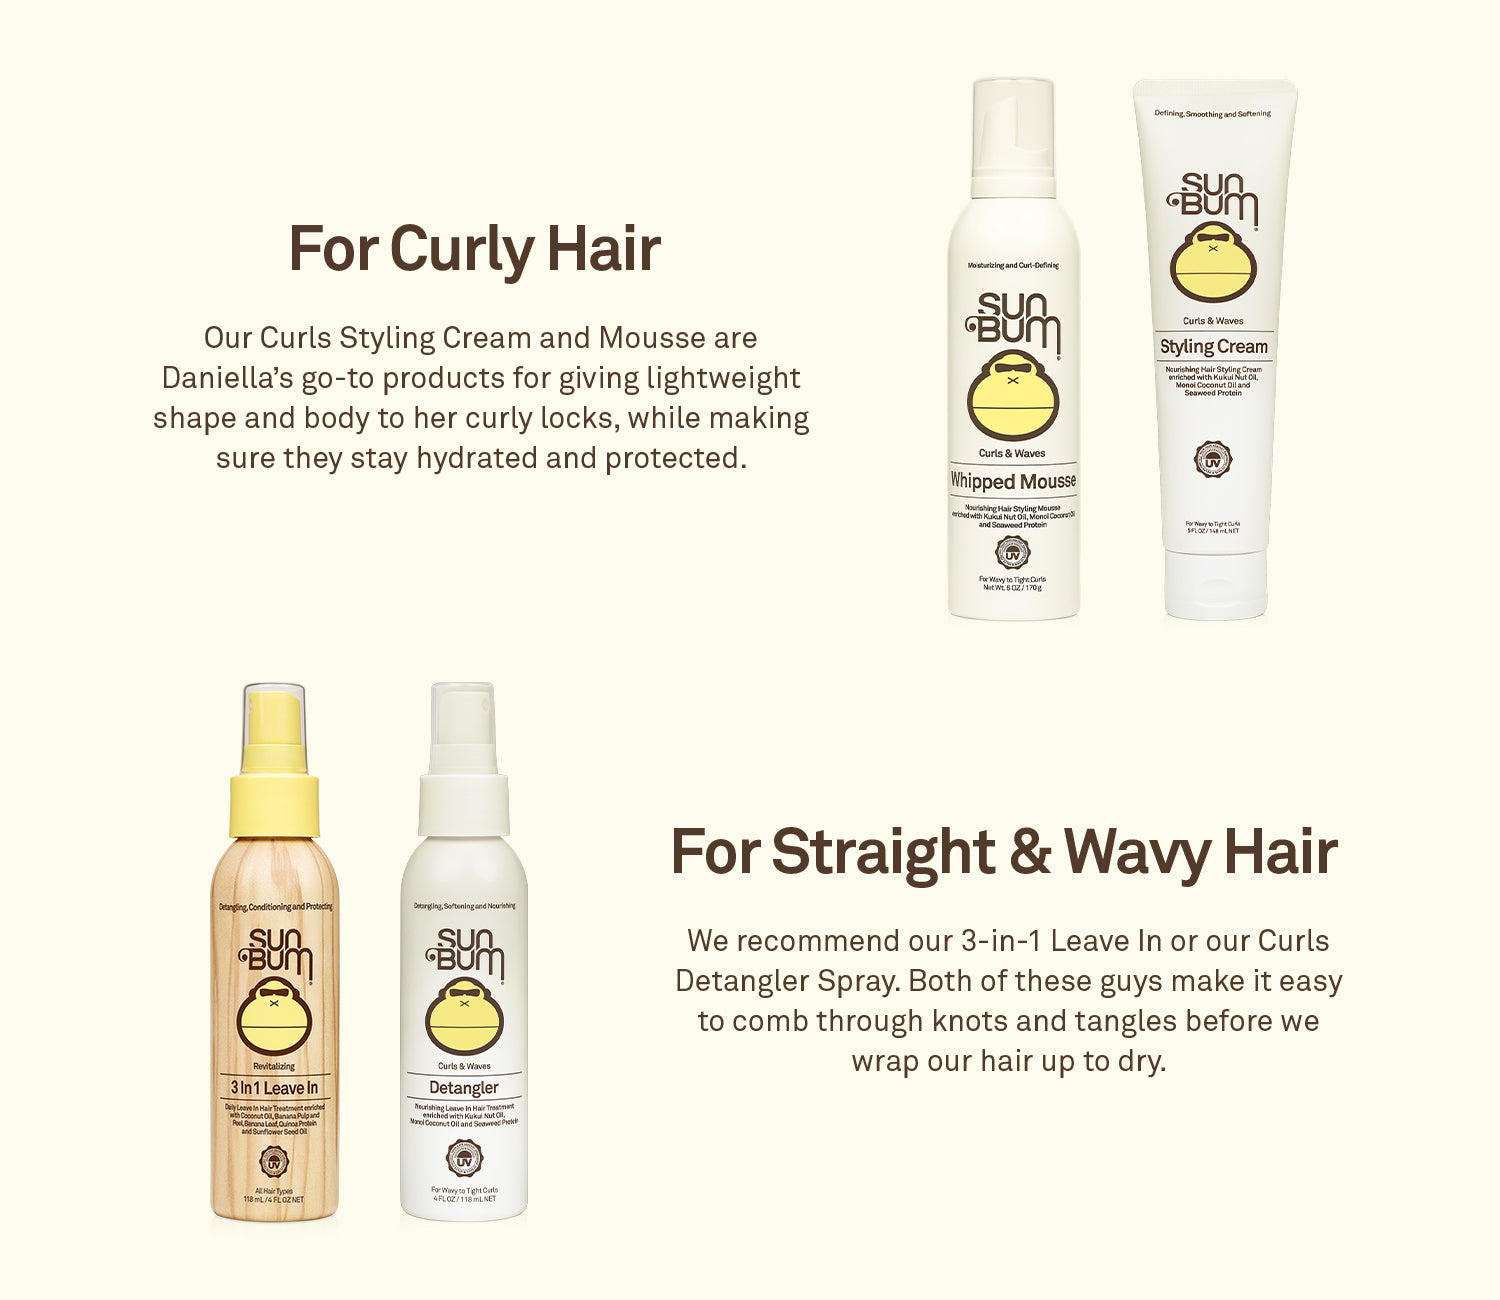 Sun Bum products for curly hair and Sun Bum product for straight/wavy hair